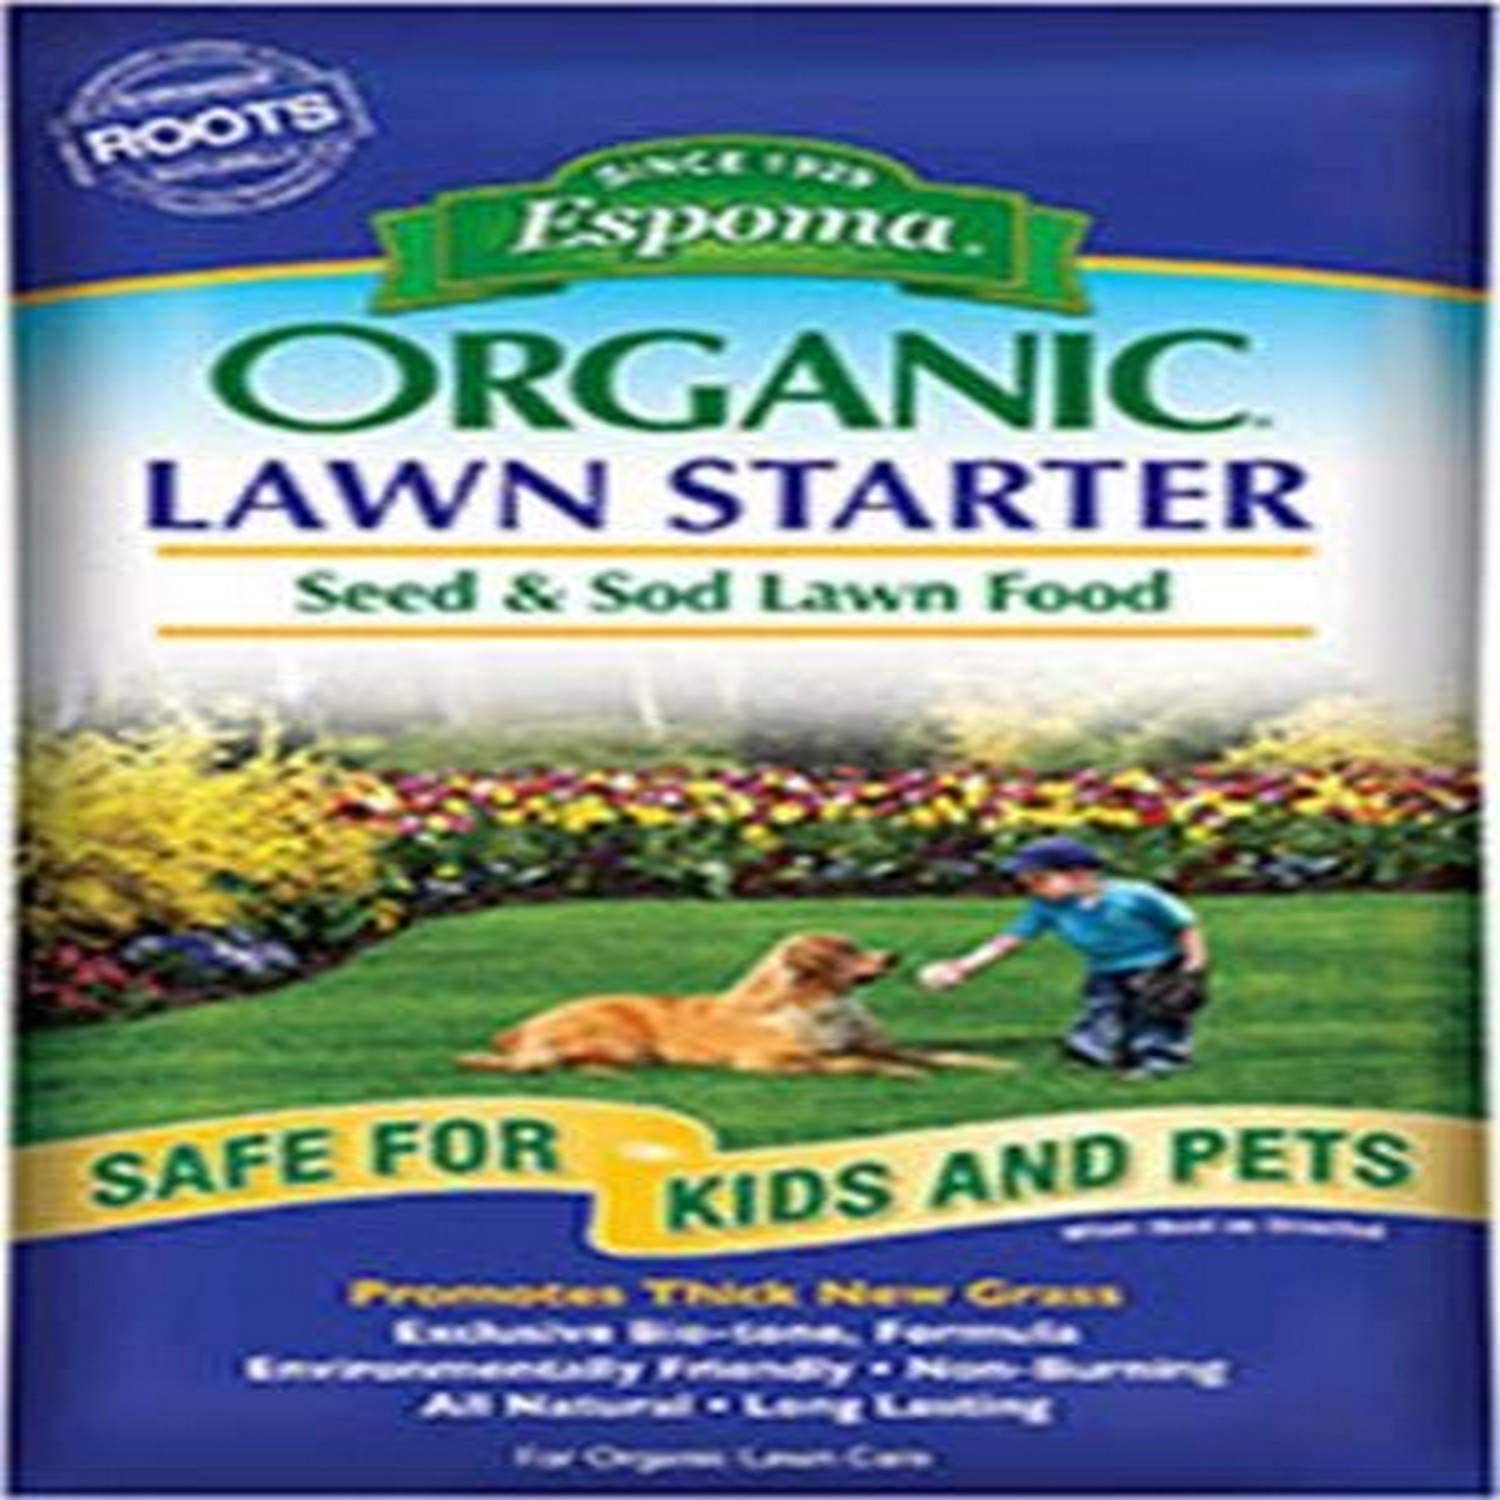 Espoma LS36 Organic Lawn Starter Seed and Sod Food Fertilizer, 36 lb